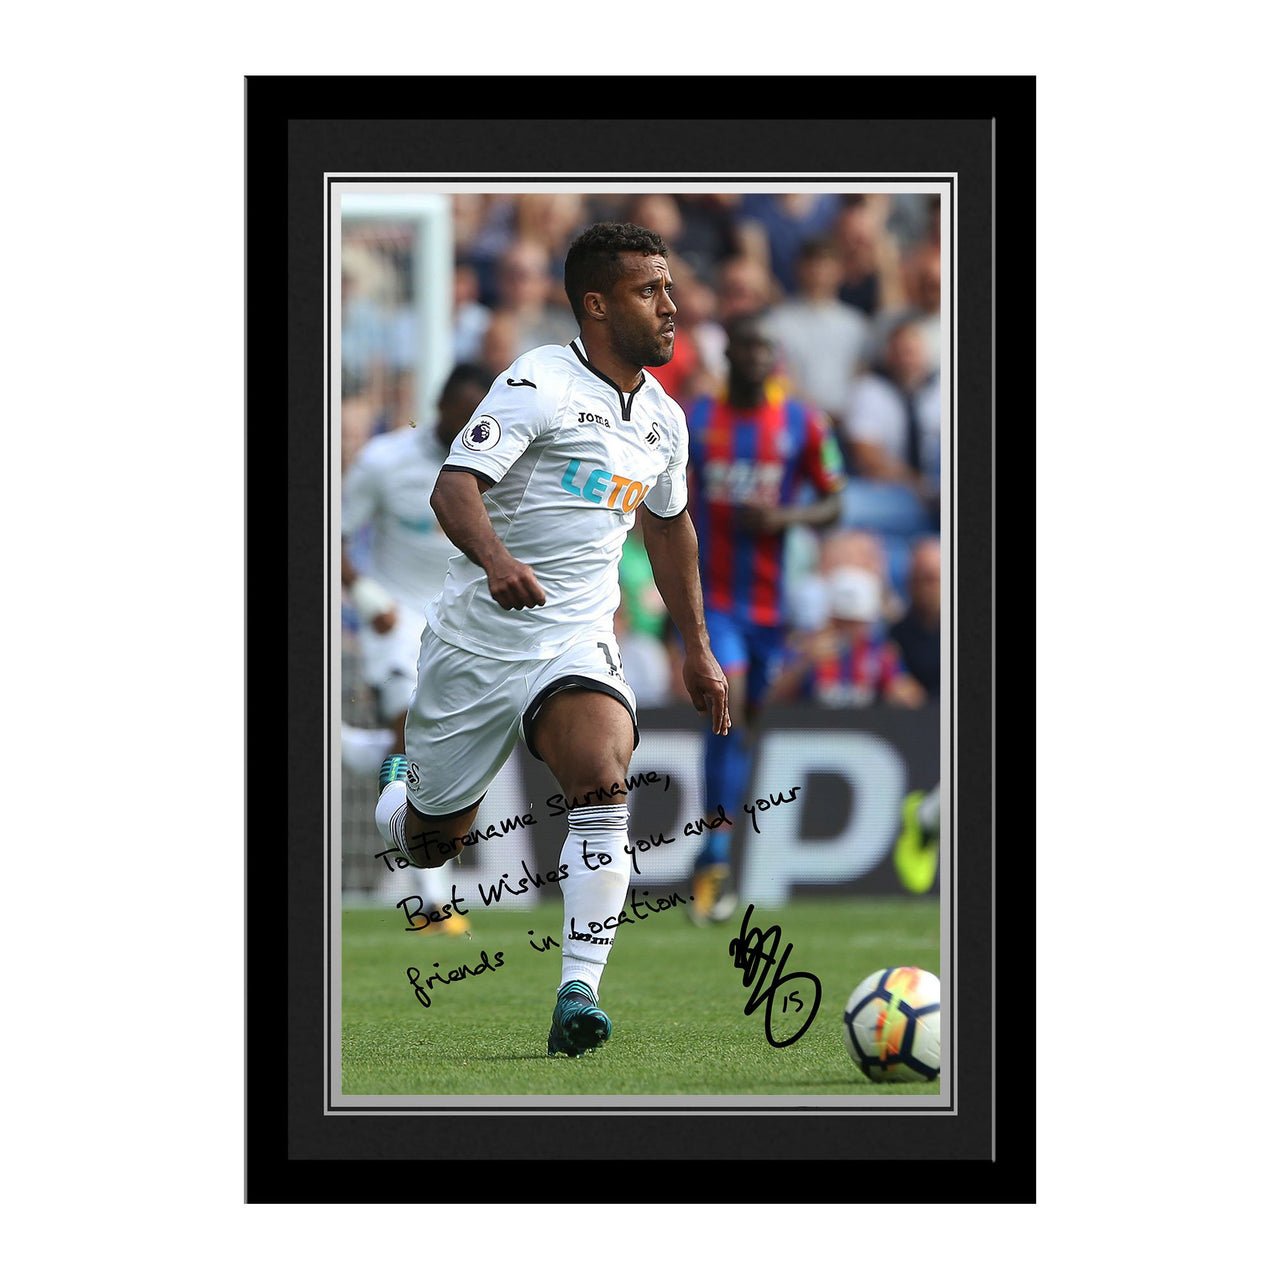 Swansea City AFC Routledge Autograph Photo Framed